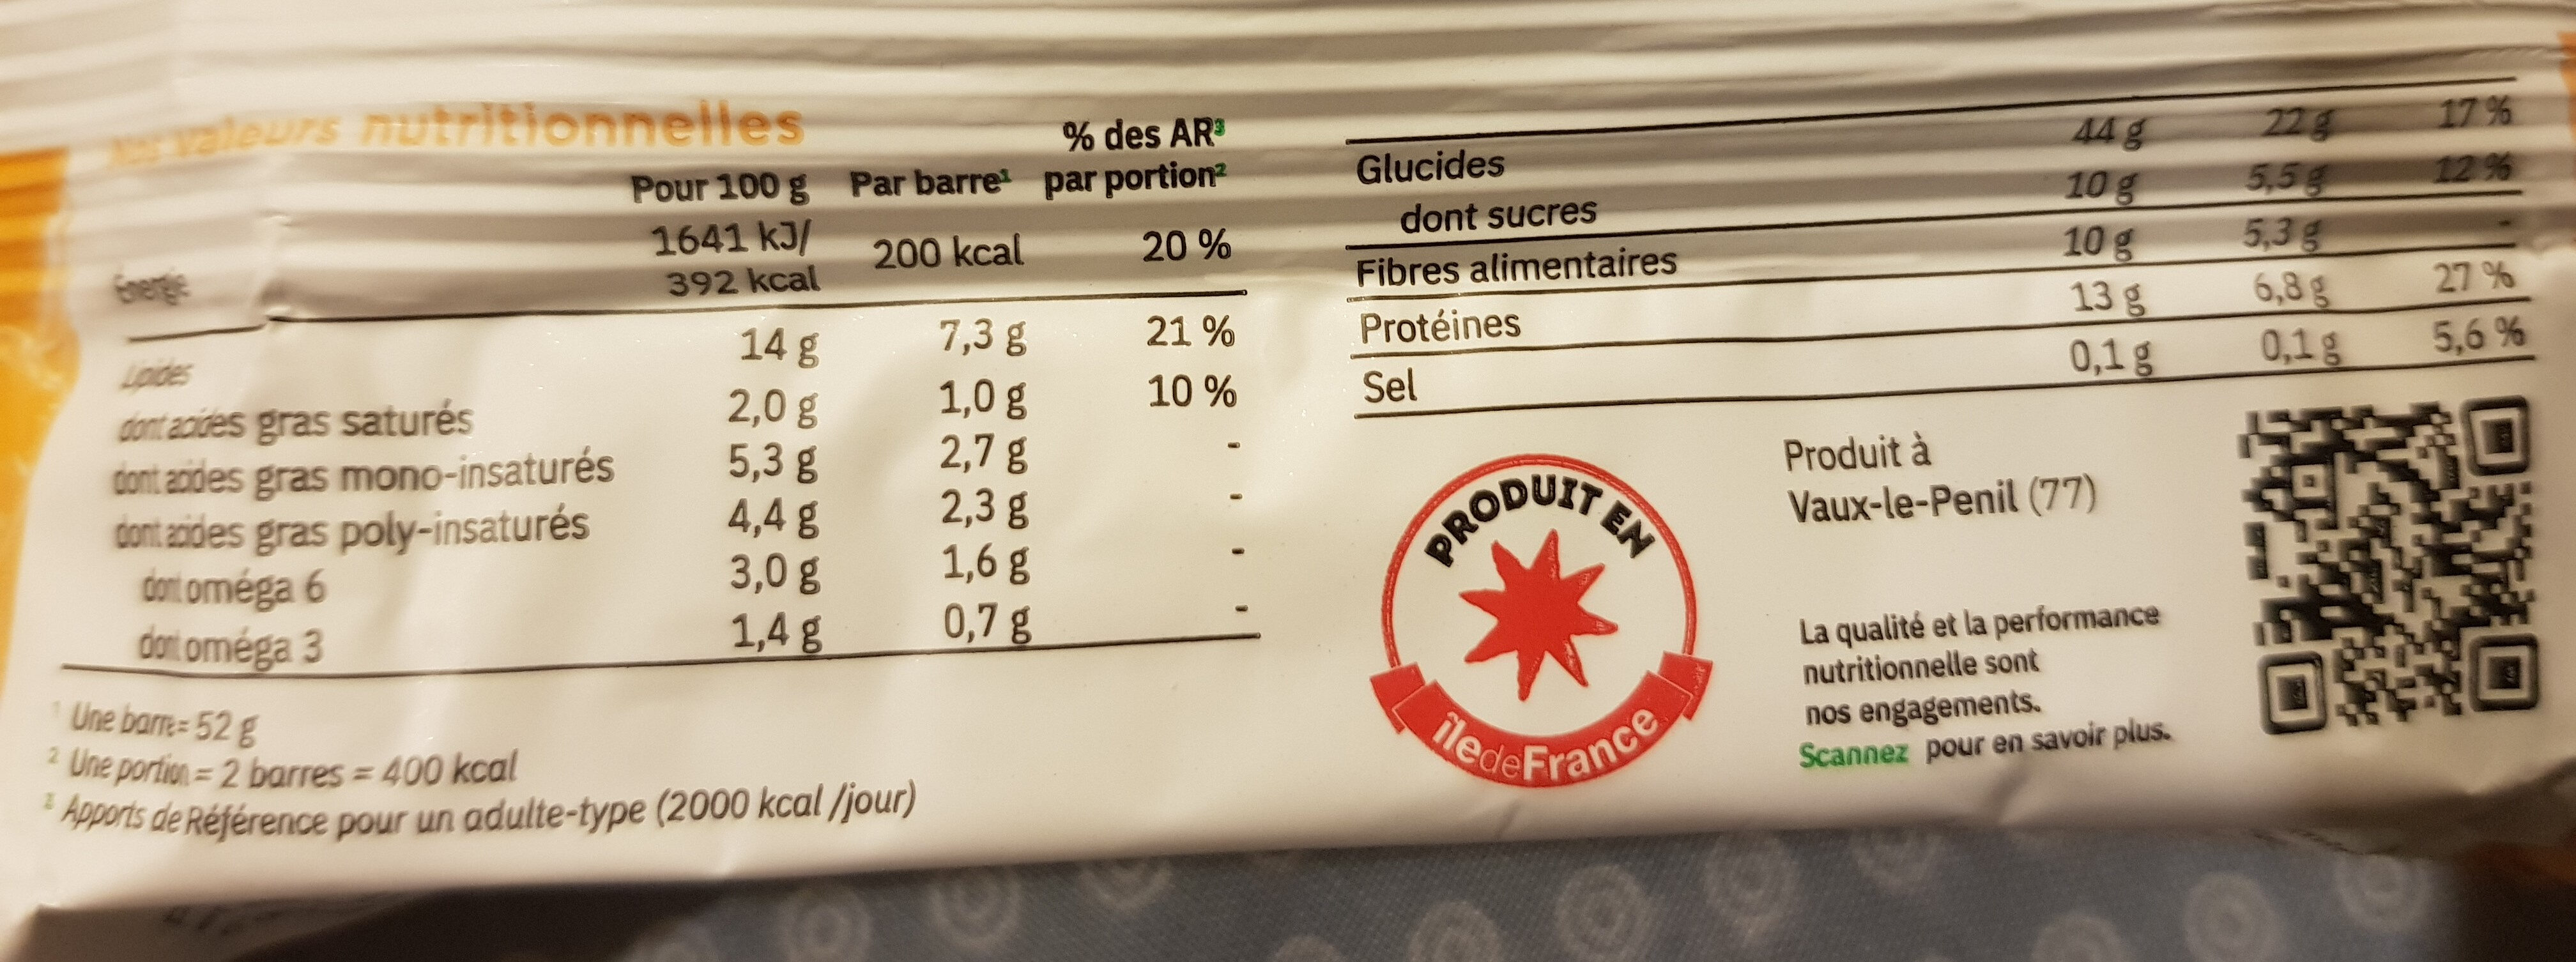 Barre daily carotte - Nutrition facts - fr